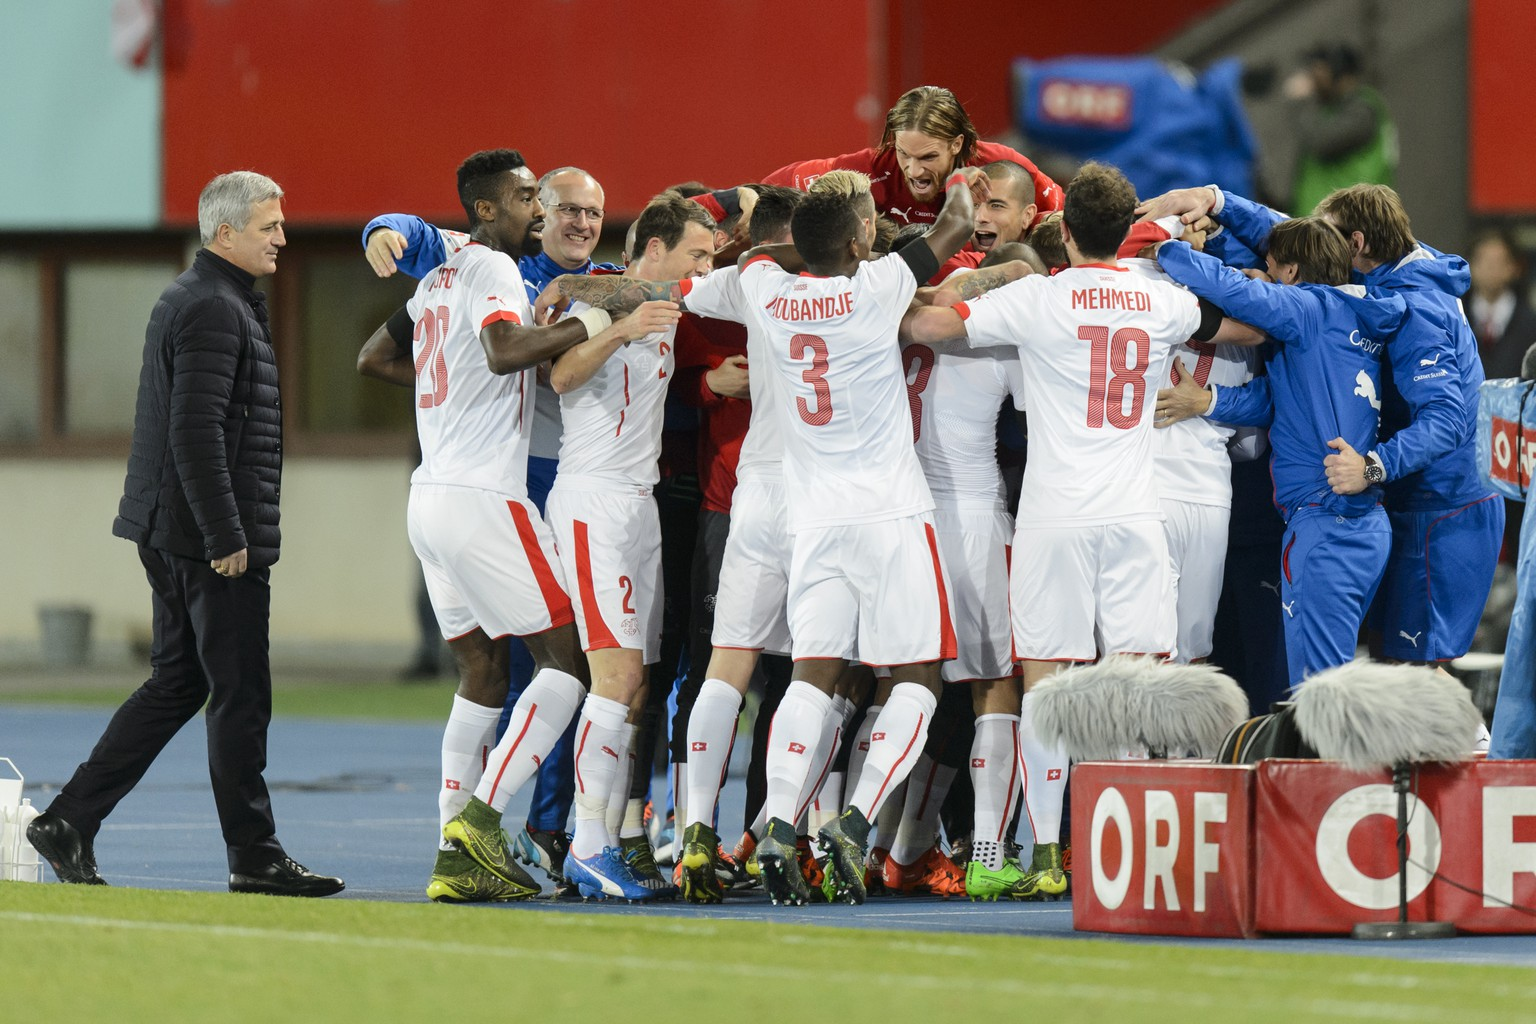 Swiss soccer players celebrates after scoring a goal with Swiss head coach Vladimir Petkovic, left, during a friendly soccer match between Austria and Switzerland at the Ernst-Happel Stadium, in Vienna, Austria, Tuesday, November 17, 2015. (KEYSTONE/Jean-Christophe Bott)